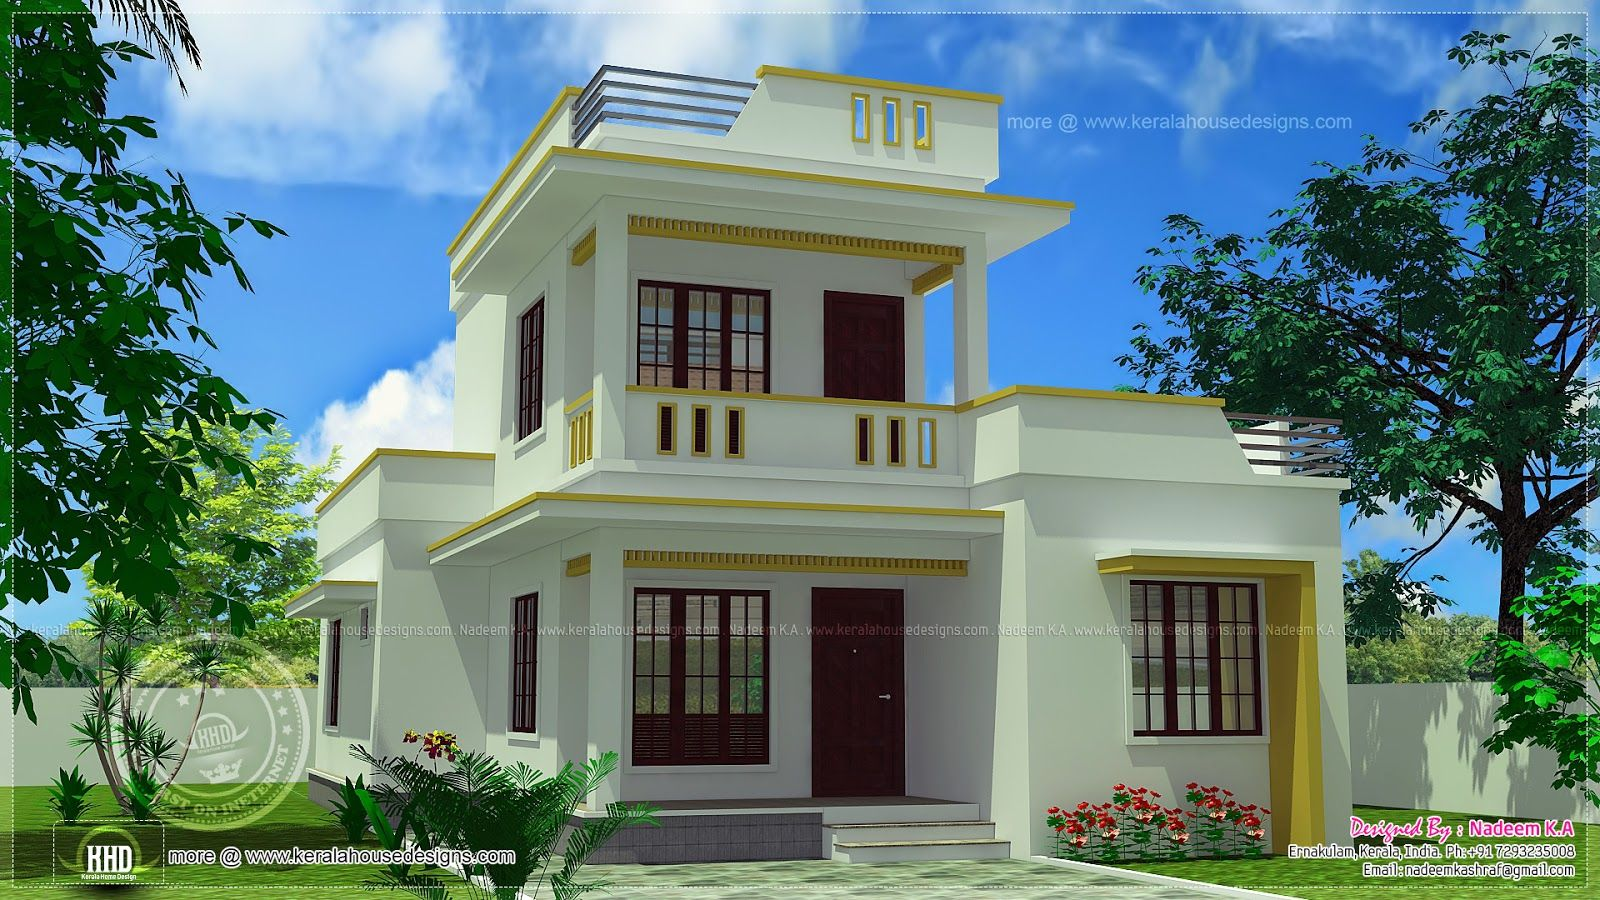 Roof home design feet kerala plans simple modern house for Simple modern house